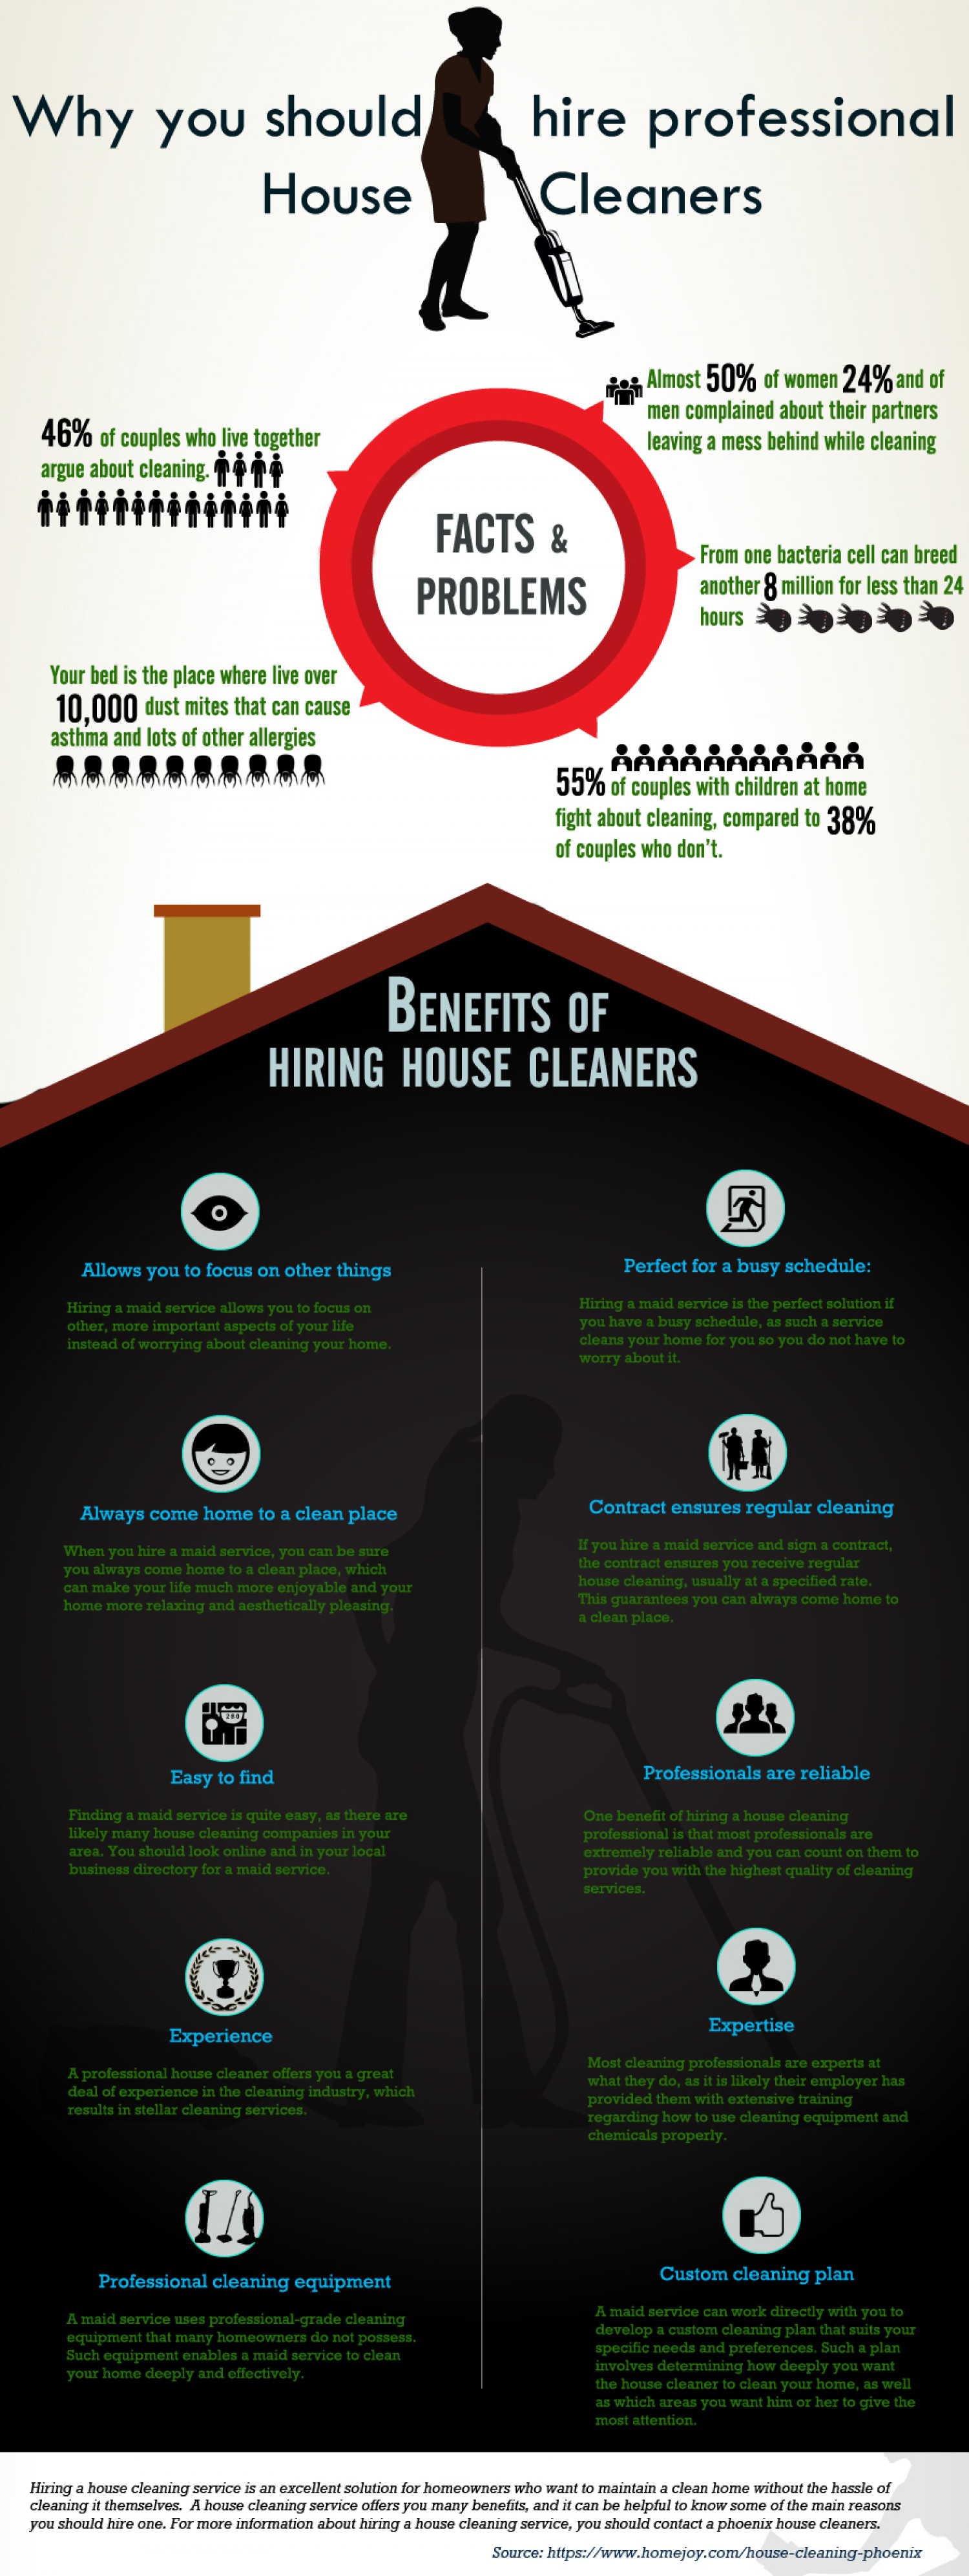 Why you should hire professional House Cleaners Infographic